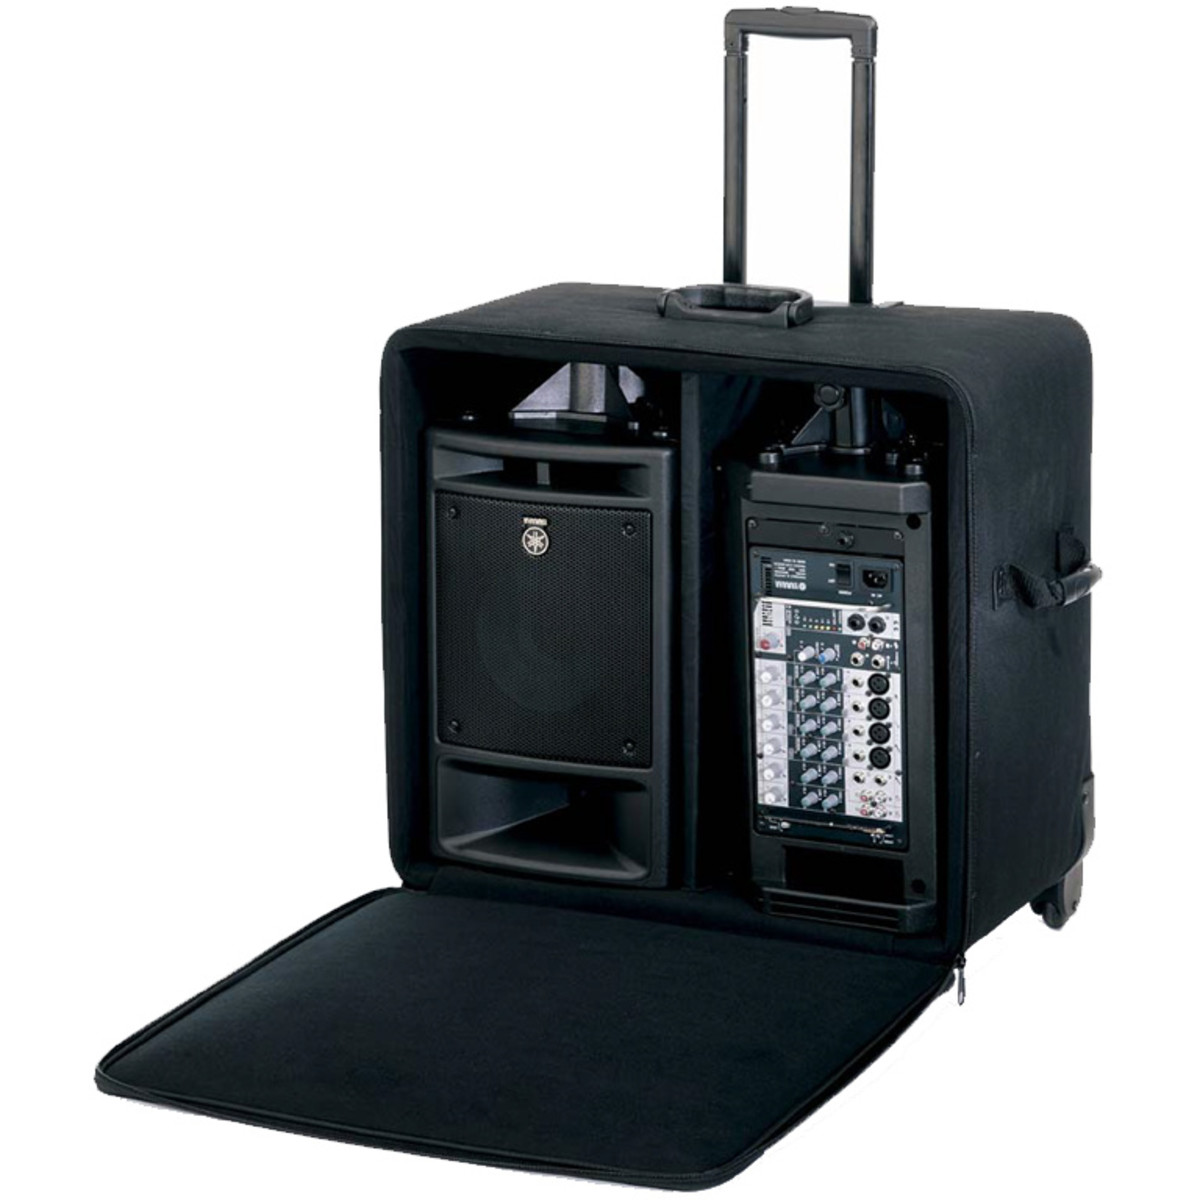 Yamaha stagepas 400i pa system carry case nearly new at for Yamaha stagepas 400i price